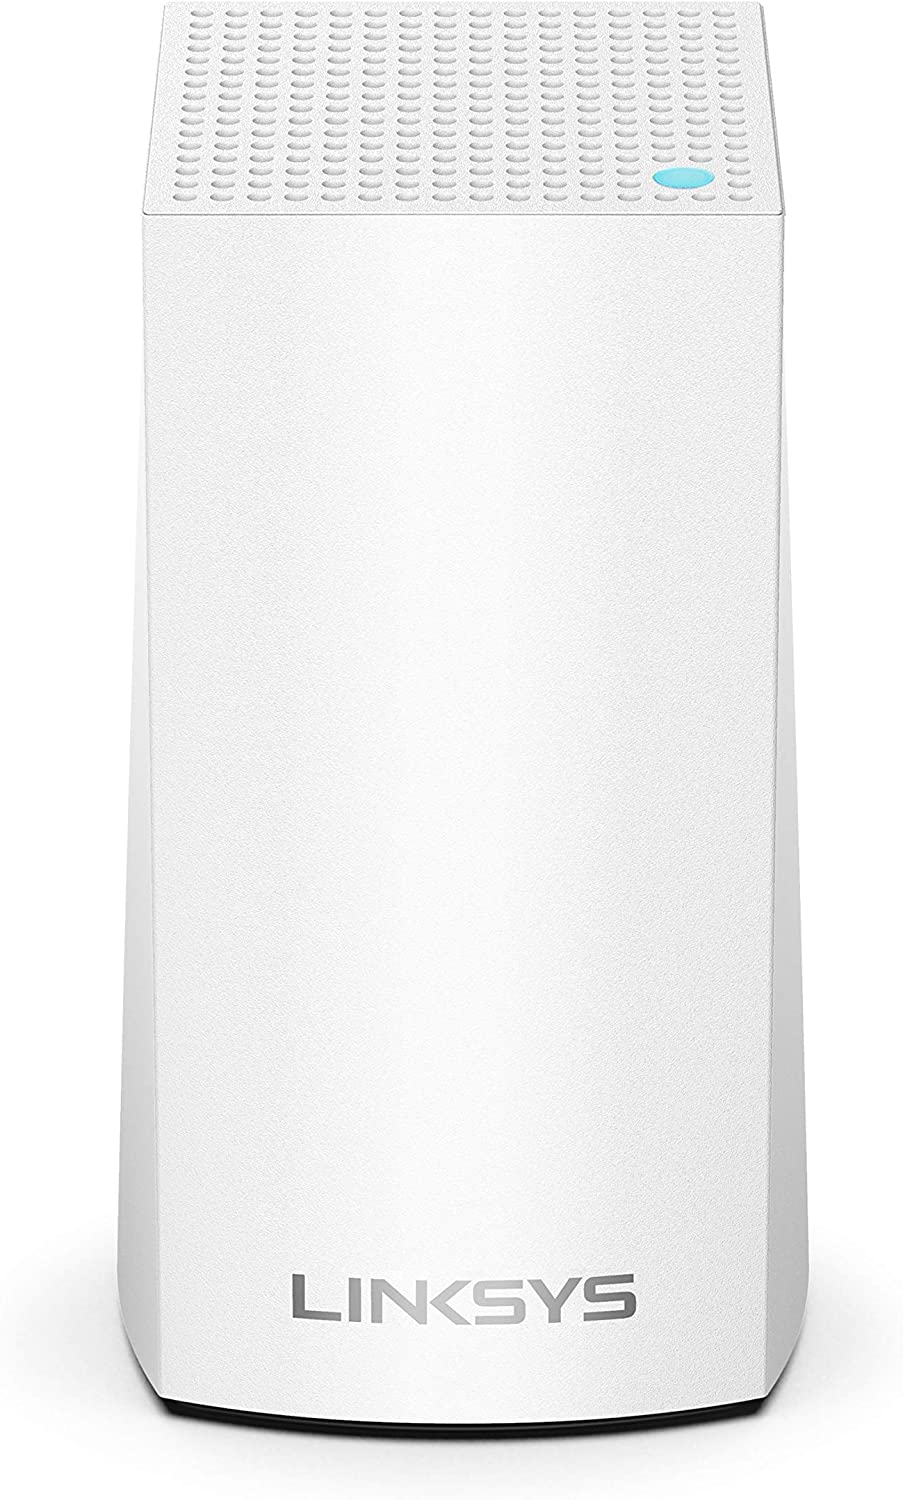 Linksys Velop Mesh Router (Home Mesh WiFi System for Whole-Home WiFi Mesh Network) 1-PackAmazonUs/ White